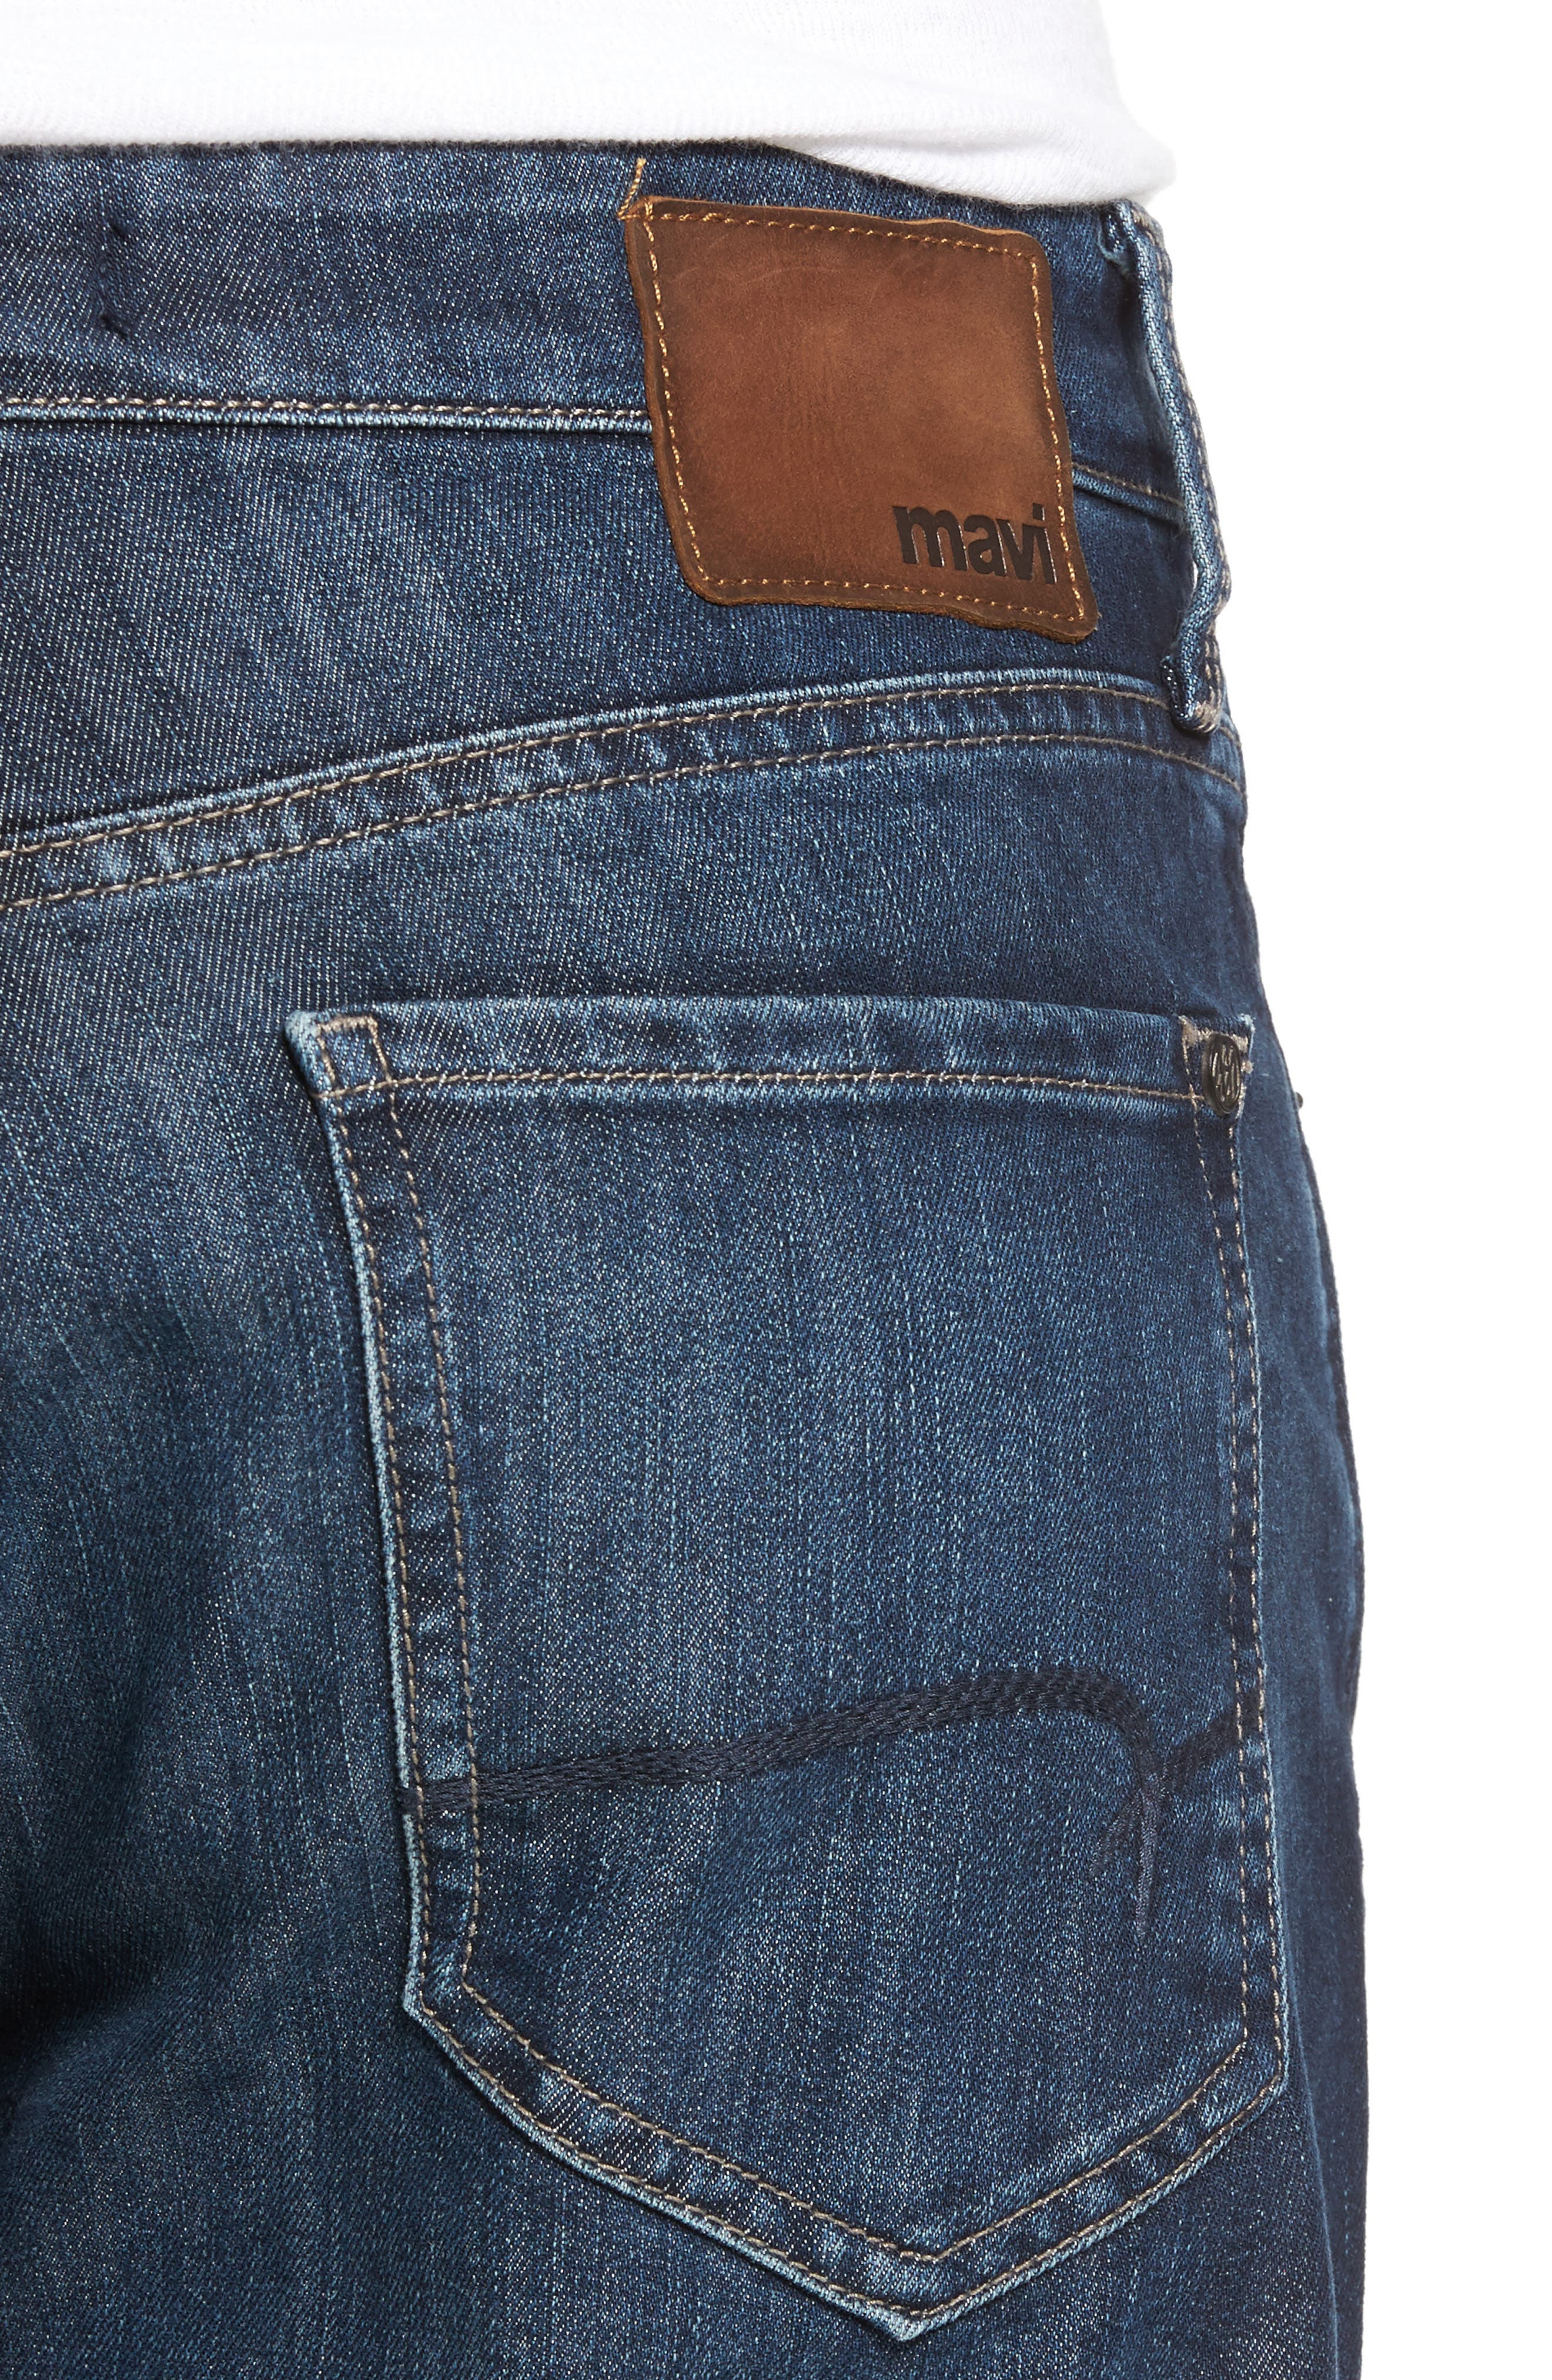 Myles Straight Leg Jeans,                             Alternate thumbnail 4, color,                             Deep Brushed Stanford